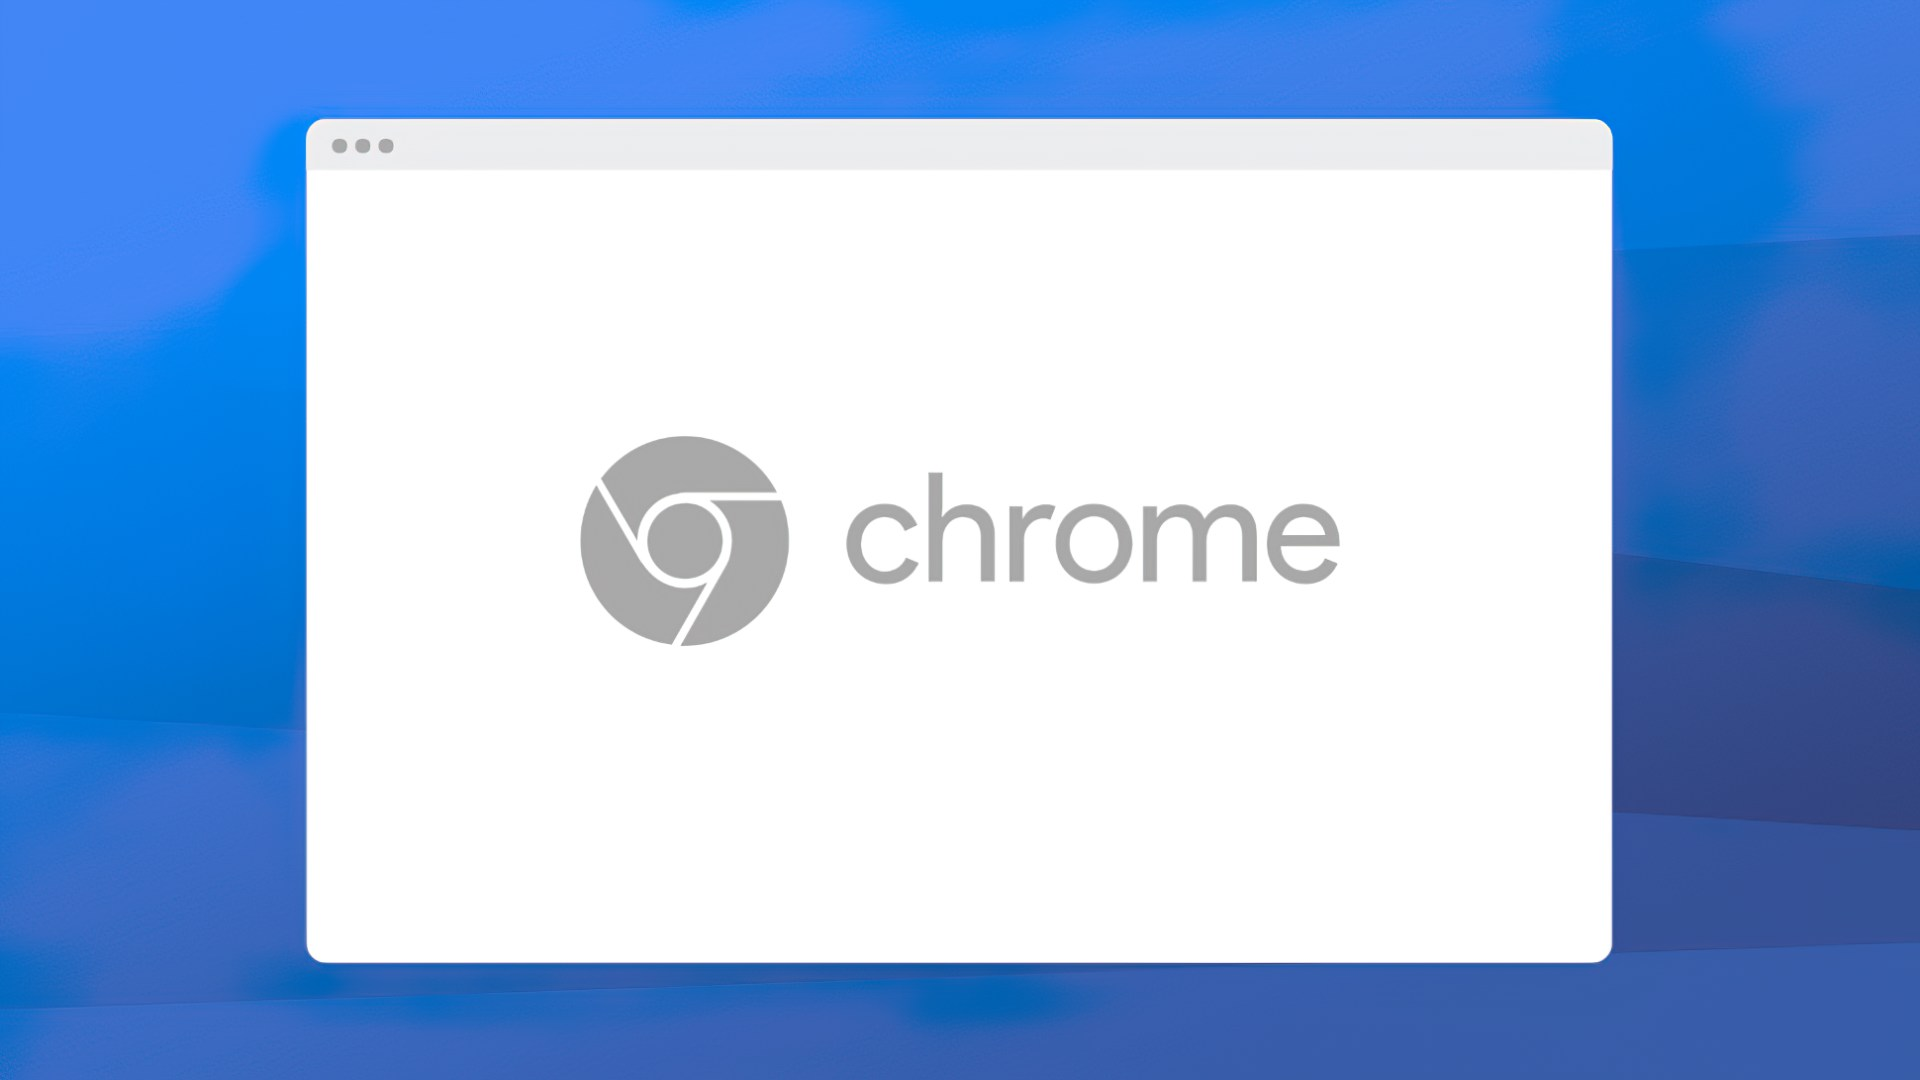 Google, Chrome, Google Chrome, Chrome OS, Google Chrome OS, Chrome Browser, Chrome Logo, chromeos, Chrome Web Store, Chrome für Android, Chromebox, Chrome Browser Fenster, Chrome Fenster